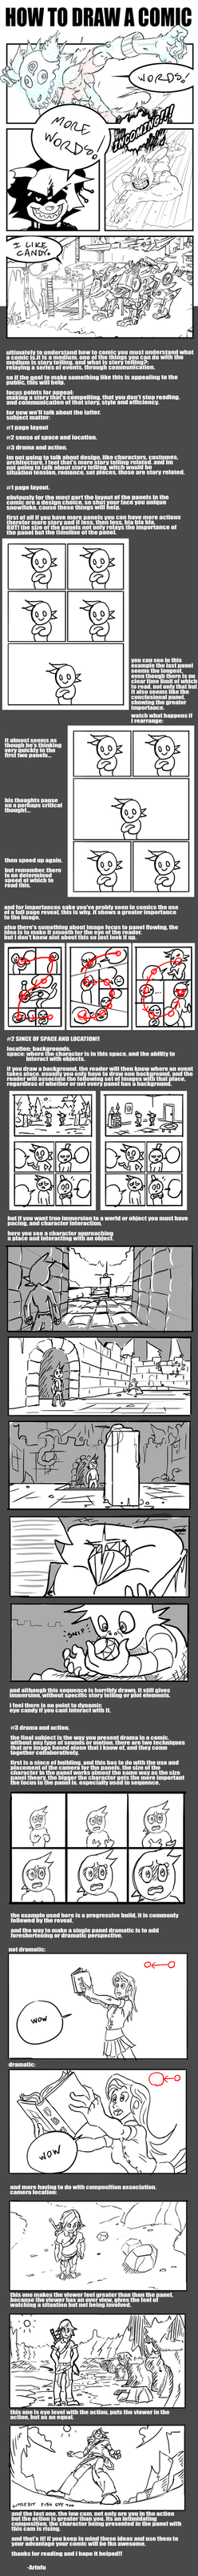 HOW TO DRAW A COMIC! by arinfu